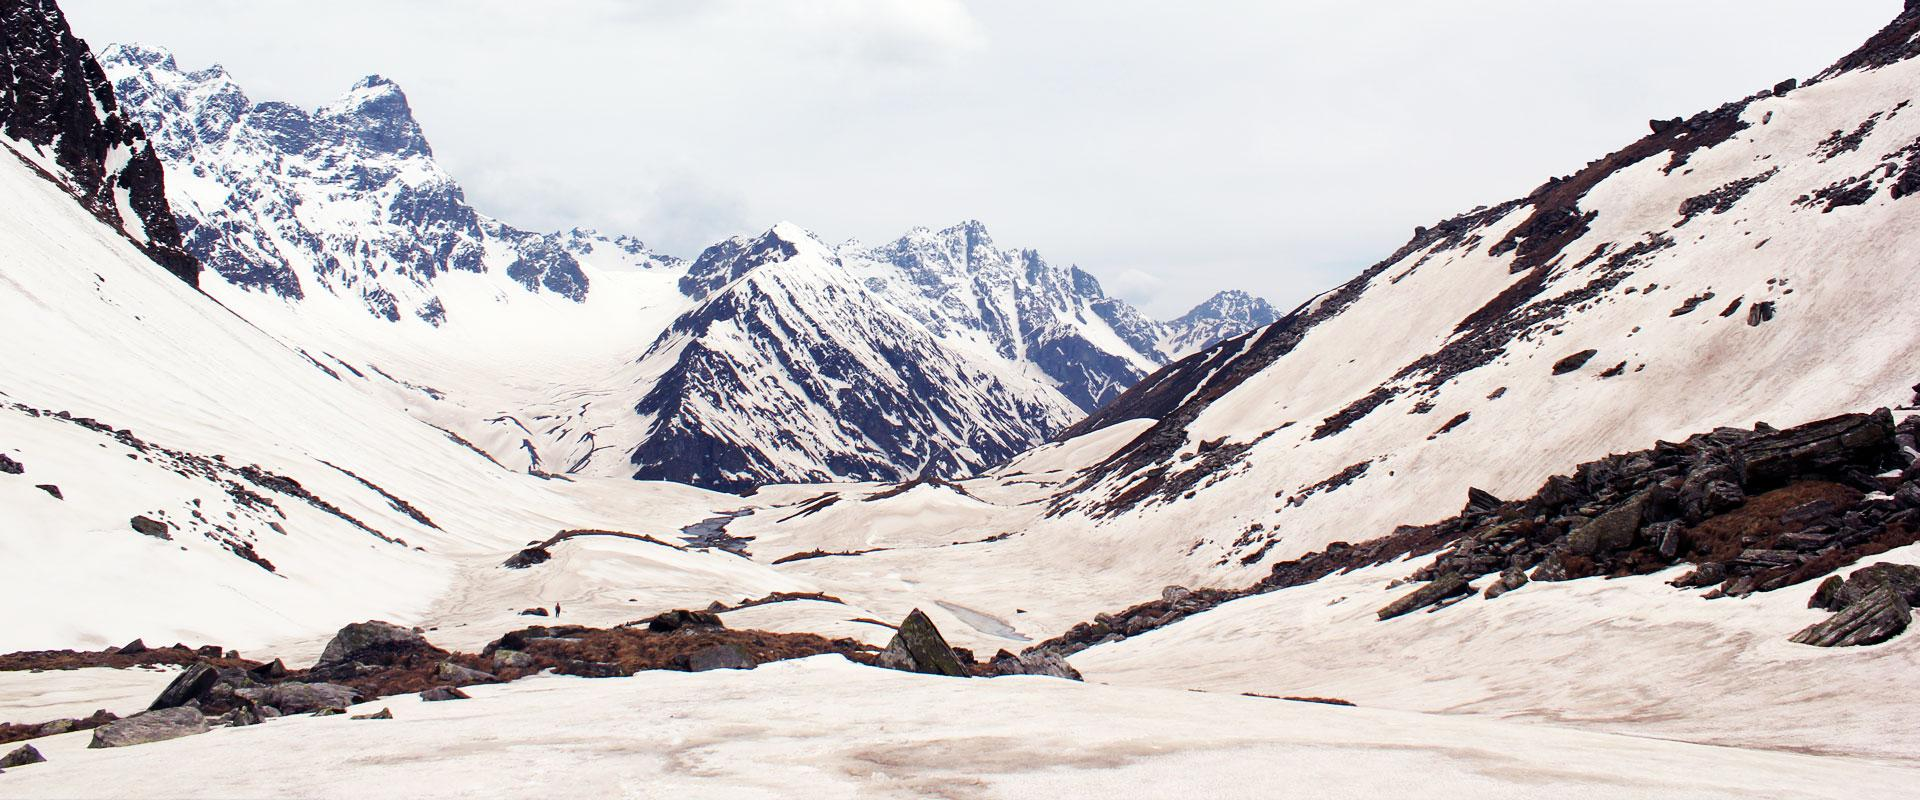 CHANDERNAHAN PEAK SNOW TREK